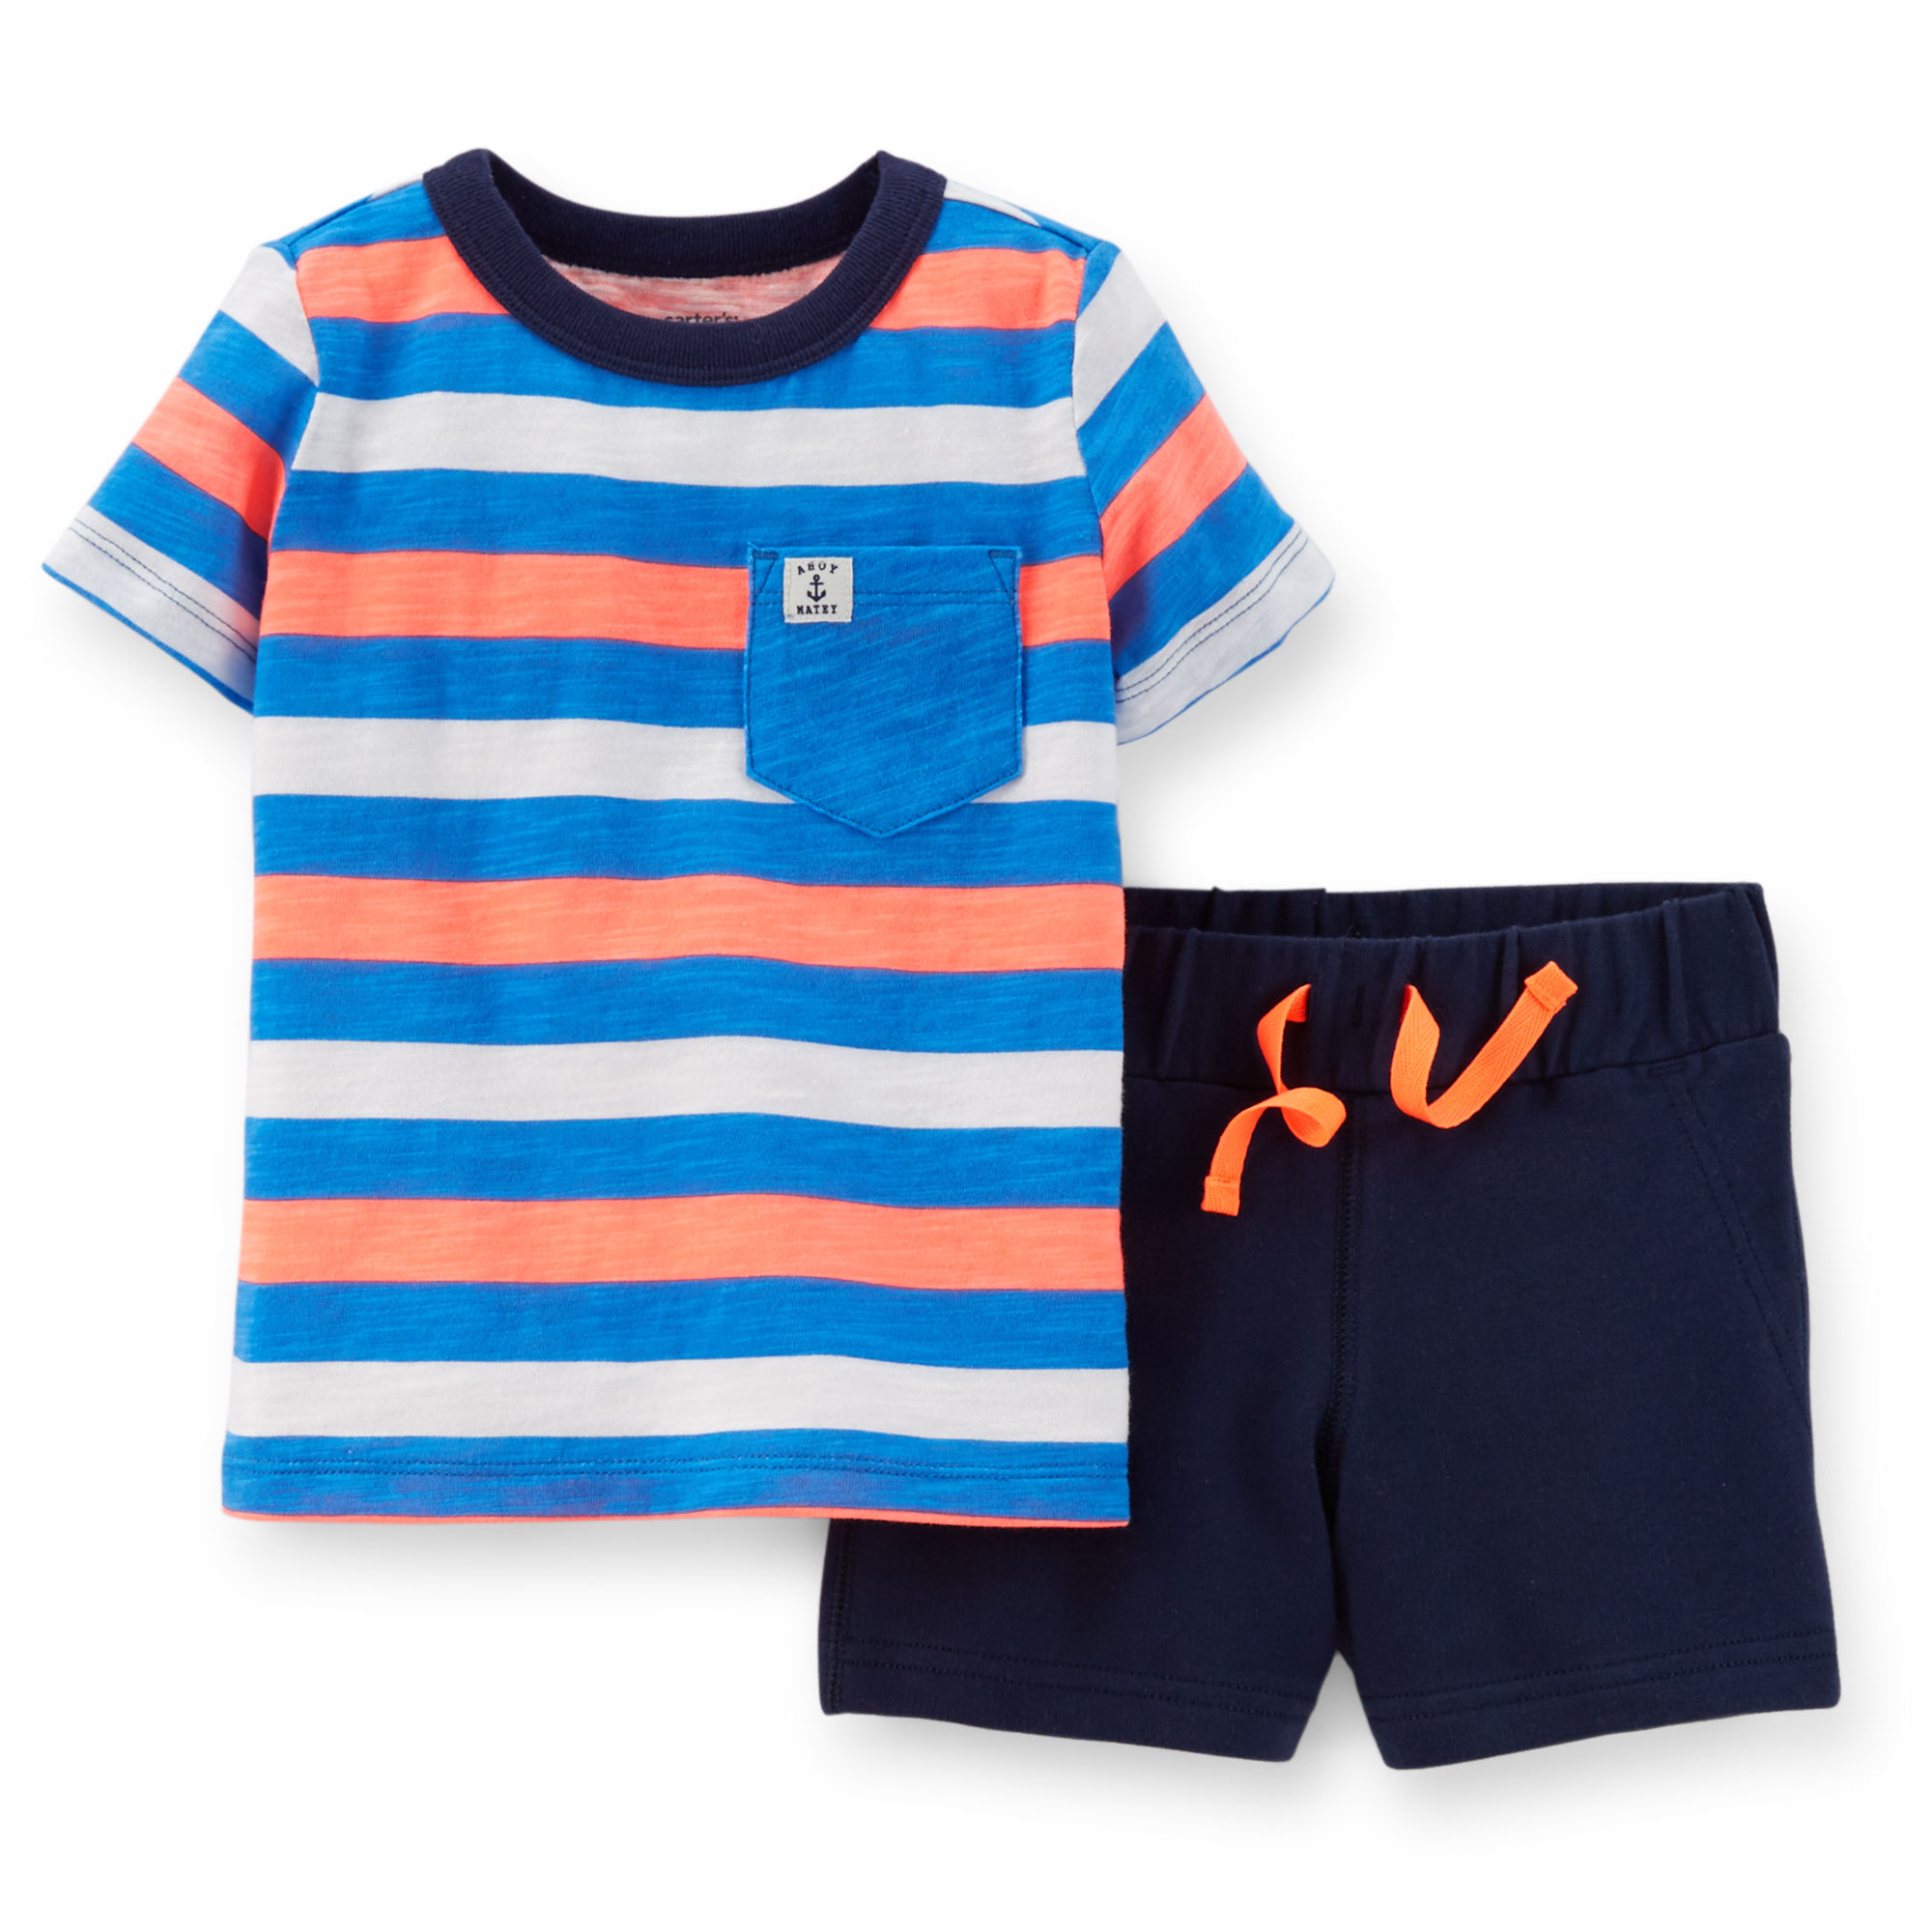 Related: baby boy summer clothes lot baby boy shoes baby boy summer clothes months baby boy clothes months baby boy outfits baby boy clothes months summer baby boy summer clothes months baby boy summer jumpsuit baby boy hat baby girl summer clothes. Include description. Categories. All.